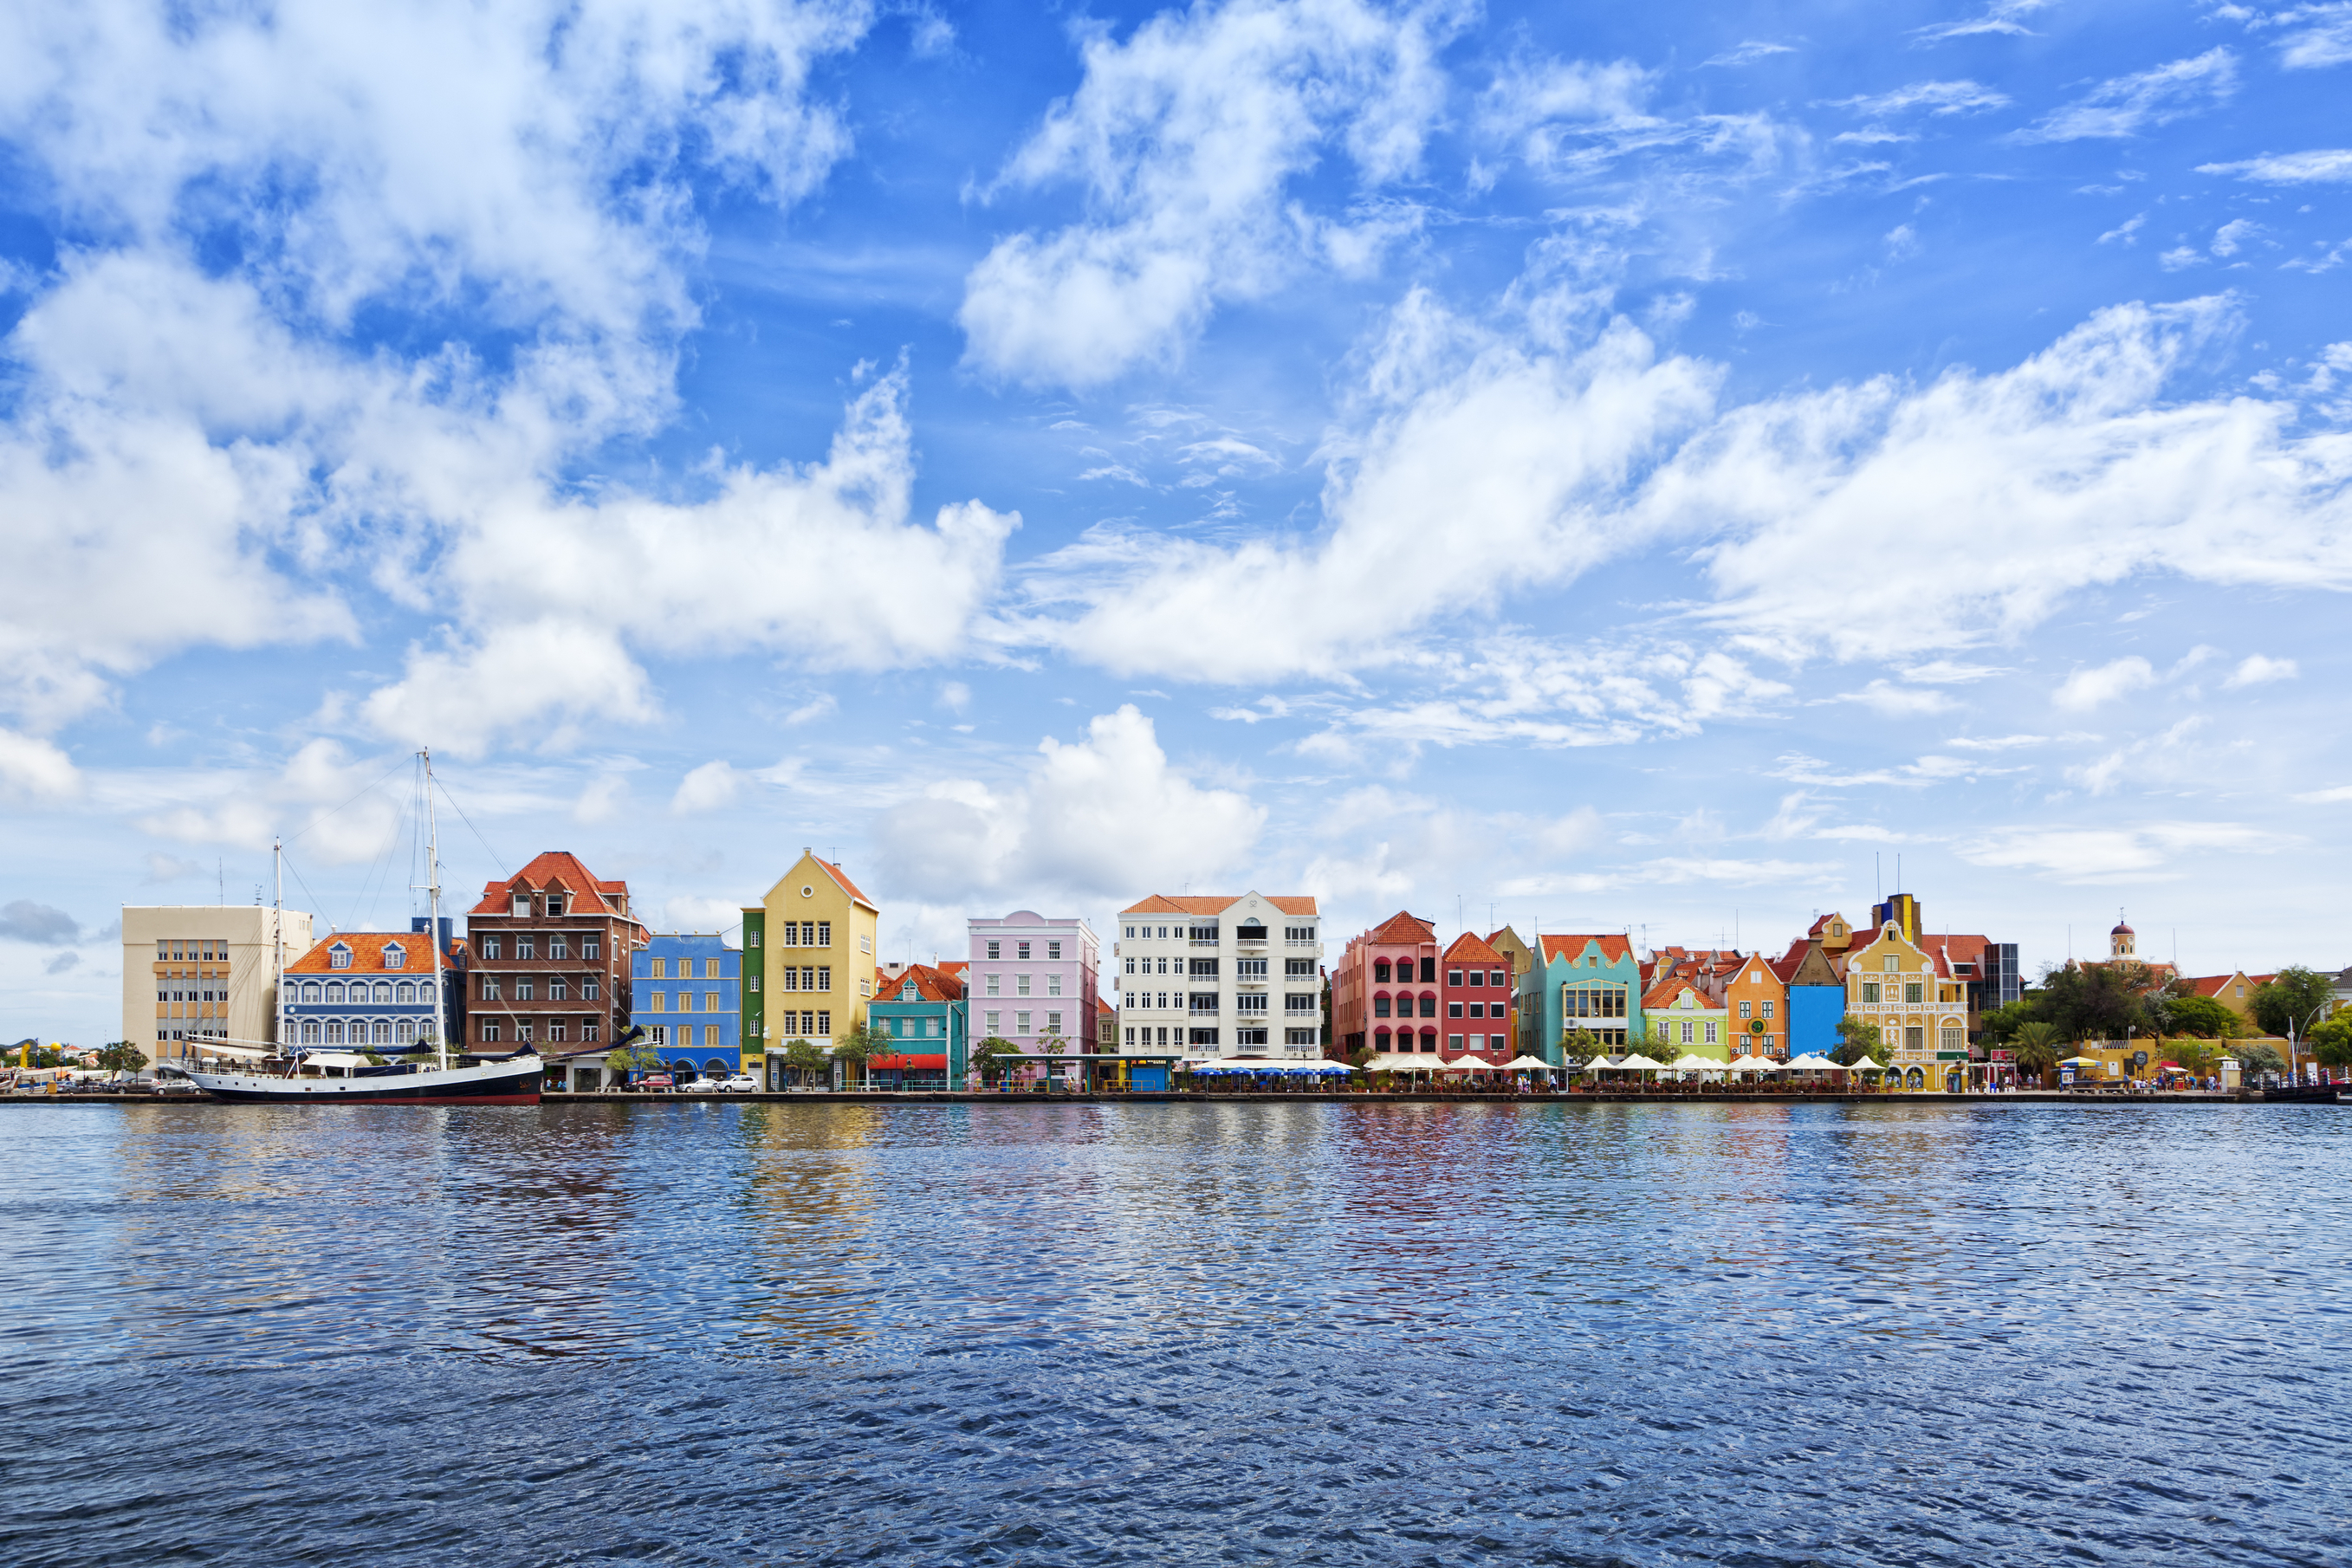 Historic houses with colorful facades at waterfront of Willemstad, Cura?ao